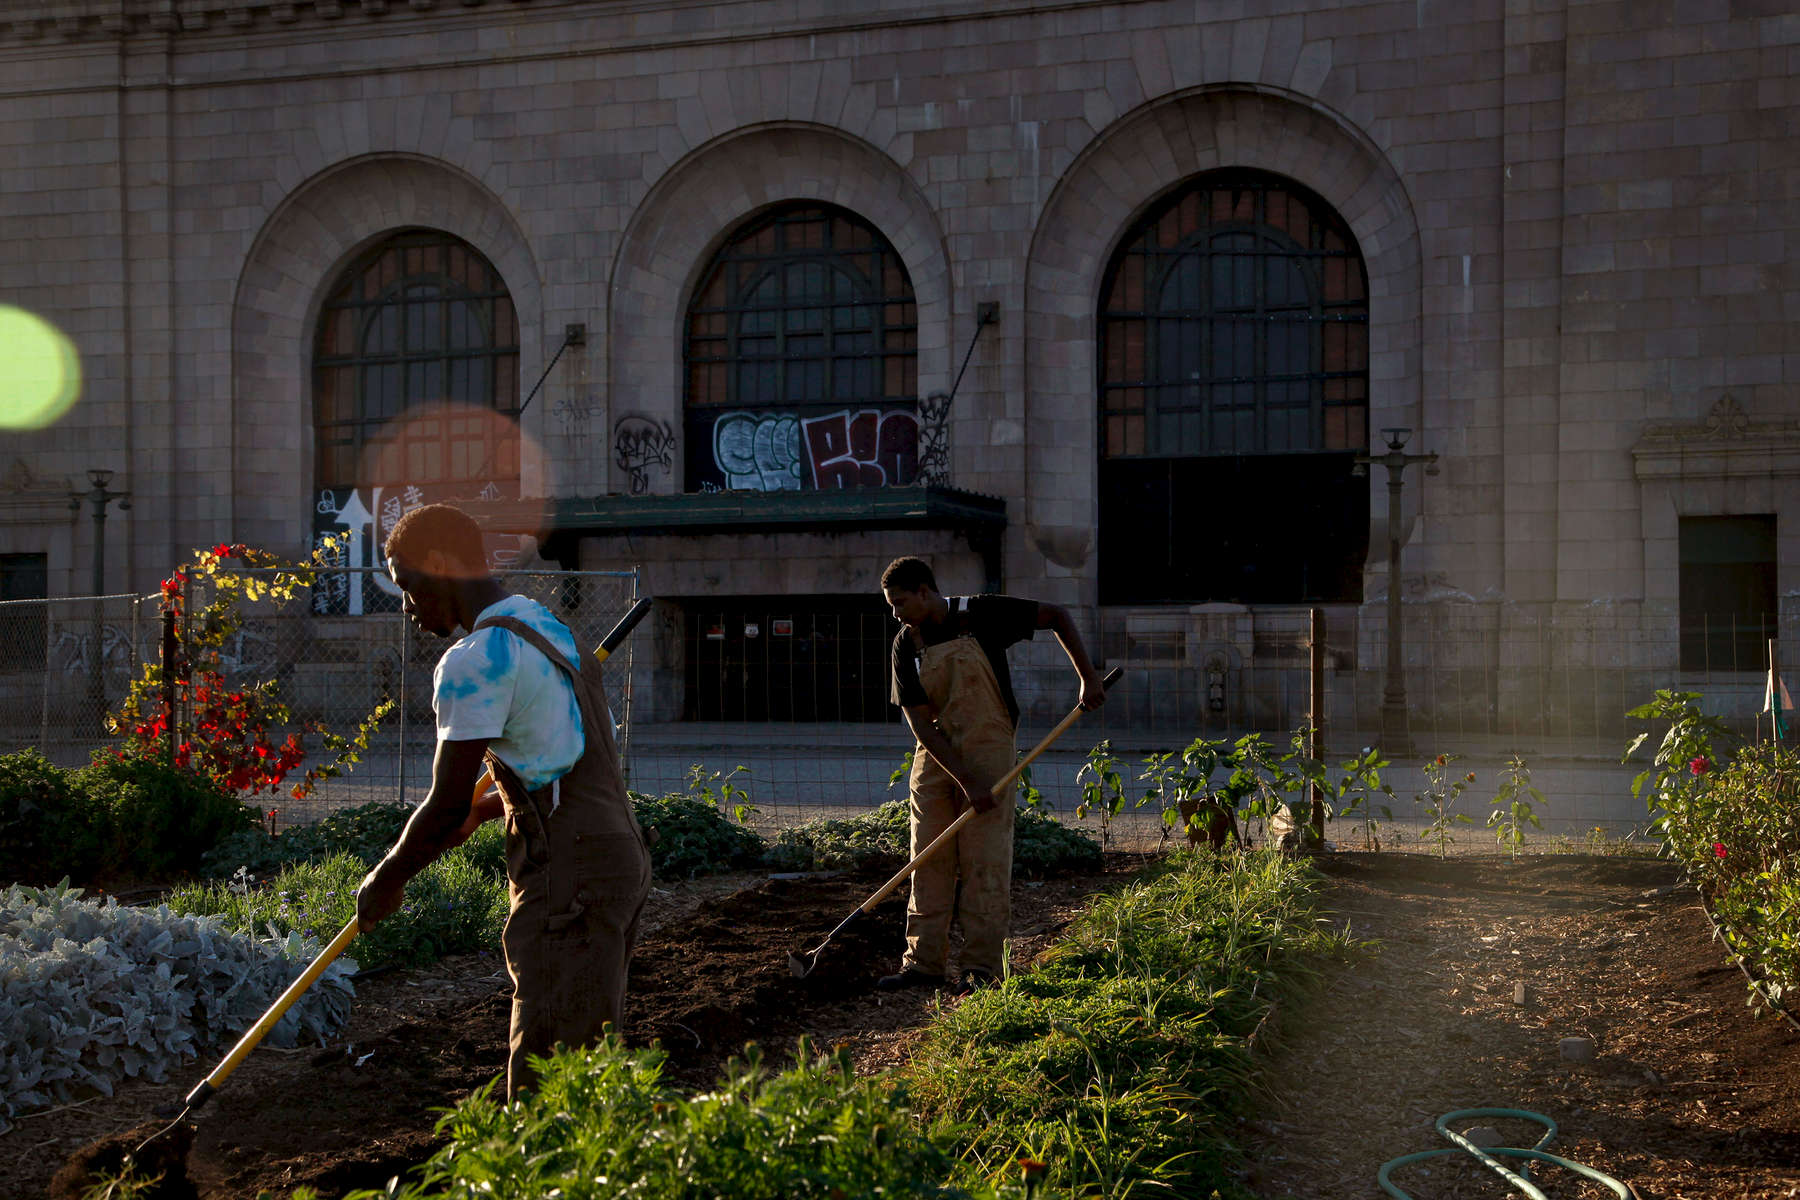 "Jakari Hill, 17, (left) and Malik Hopkins, 14, prep dirt for flower beds at WOW Farm in Oakland, Calif., on Tuesday, October 4, 2016. Malik said he enjoys the physicality of farming the most. ""It's kinda like the gym but different."" The flower farm sits in front of the historic 16th Street Station. The station was built in 1912 and operated until the early 1990s. The station was integral to the Second Great Migration, when African-Americans left the South in search of jobs. Many resettled in Oakland. (Photo by Preston Gannaway © 2016)"